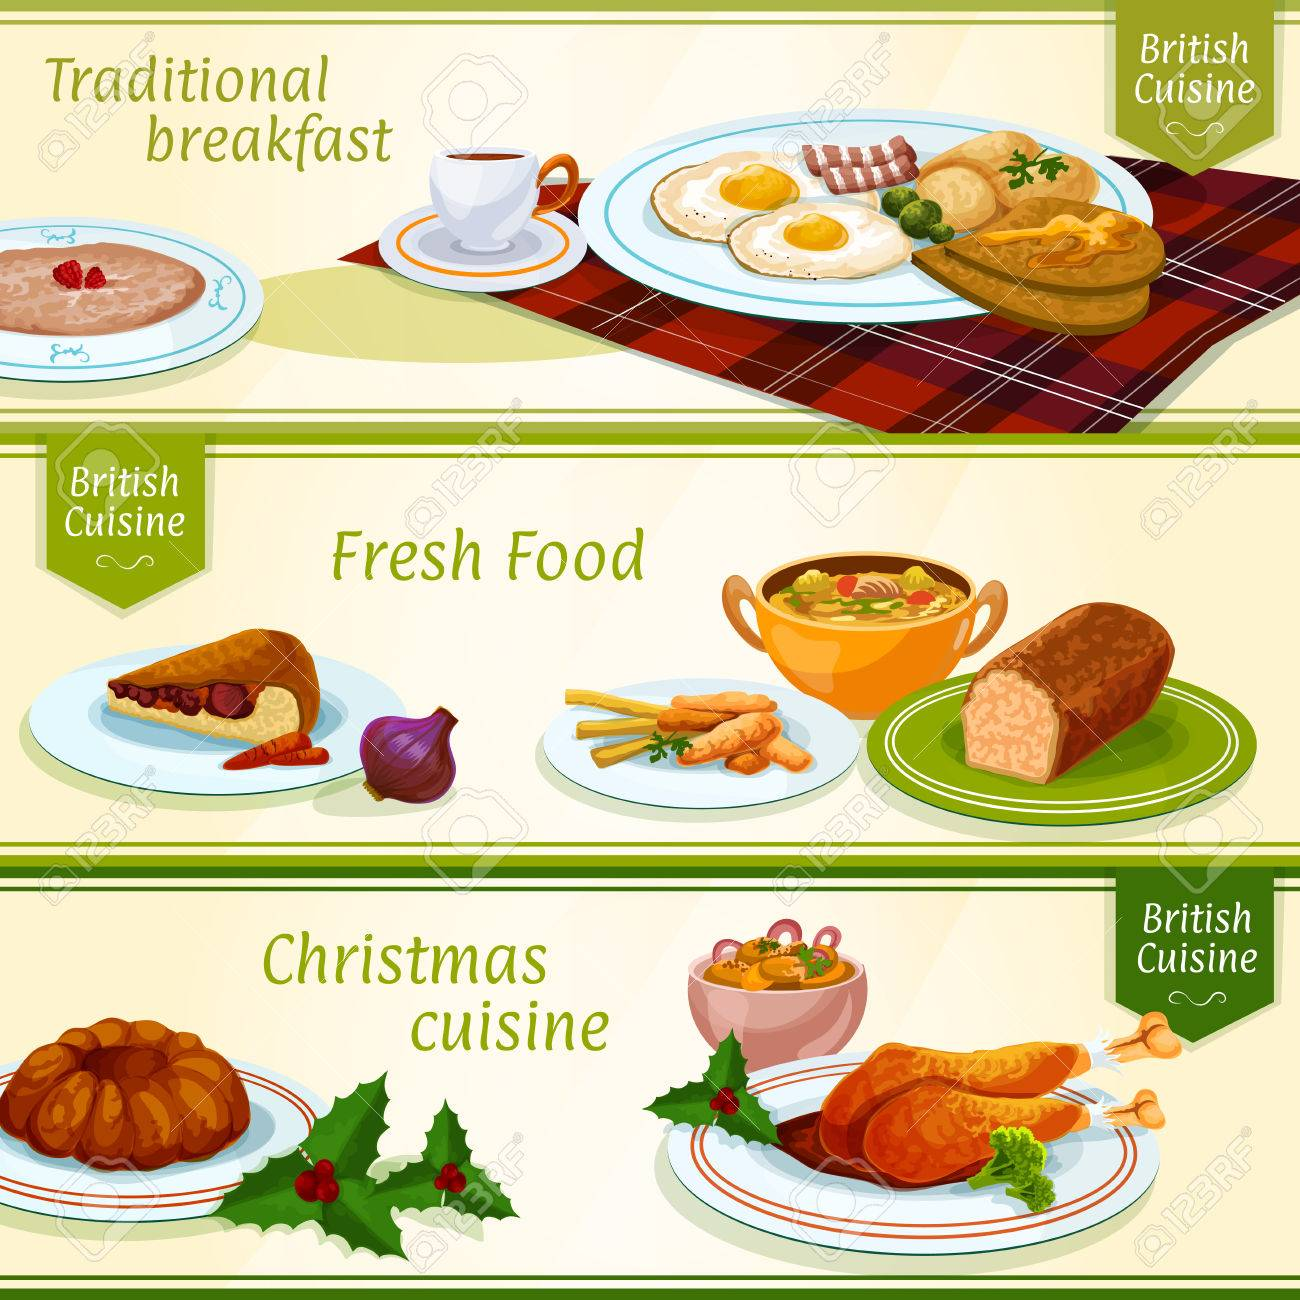 Traditional Christmas Dinner Menu.British Cuisine Breakfast And Christmas Dinner Menu Banners With